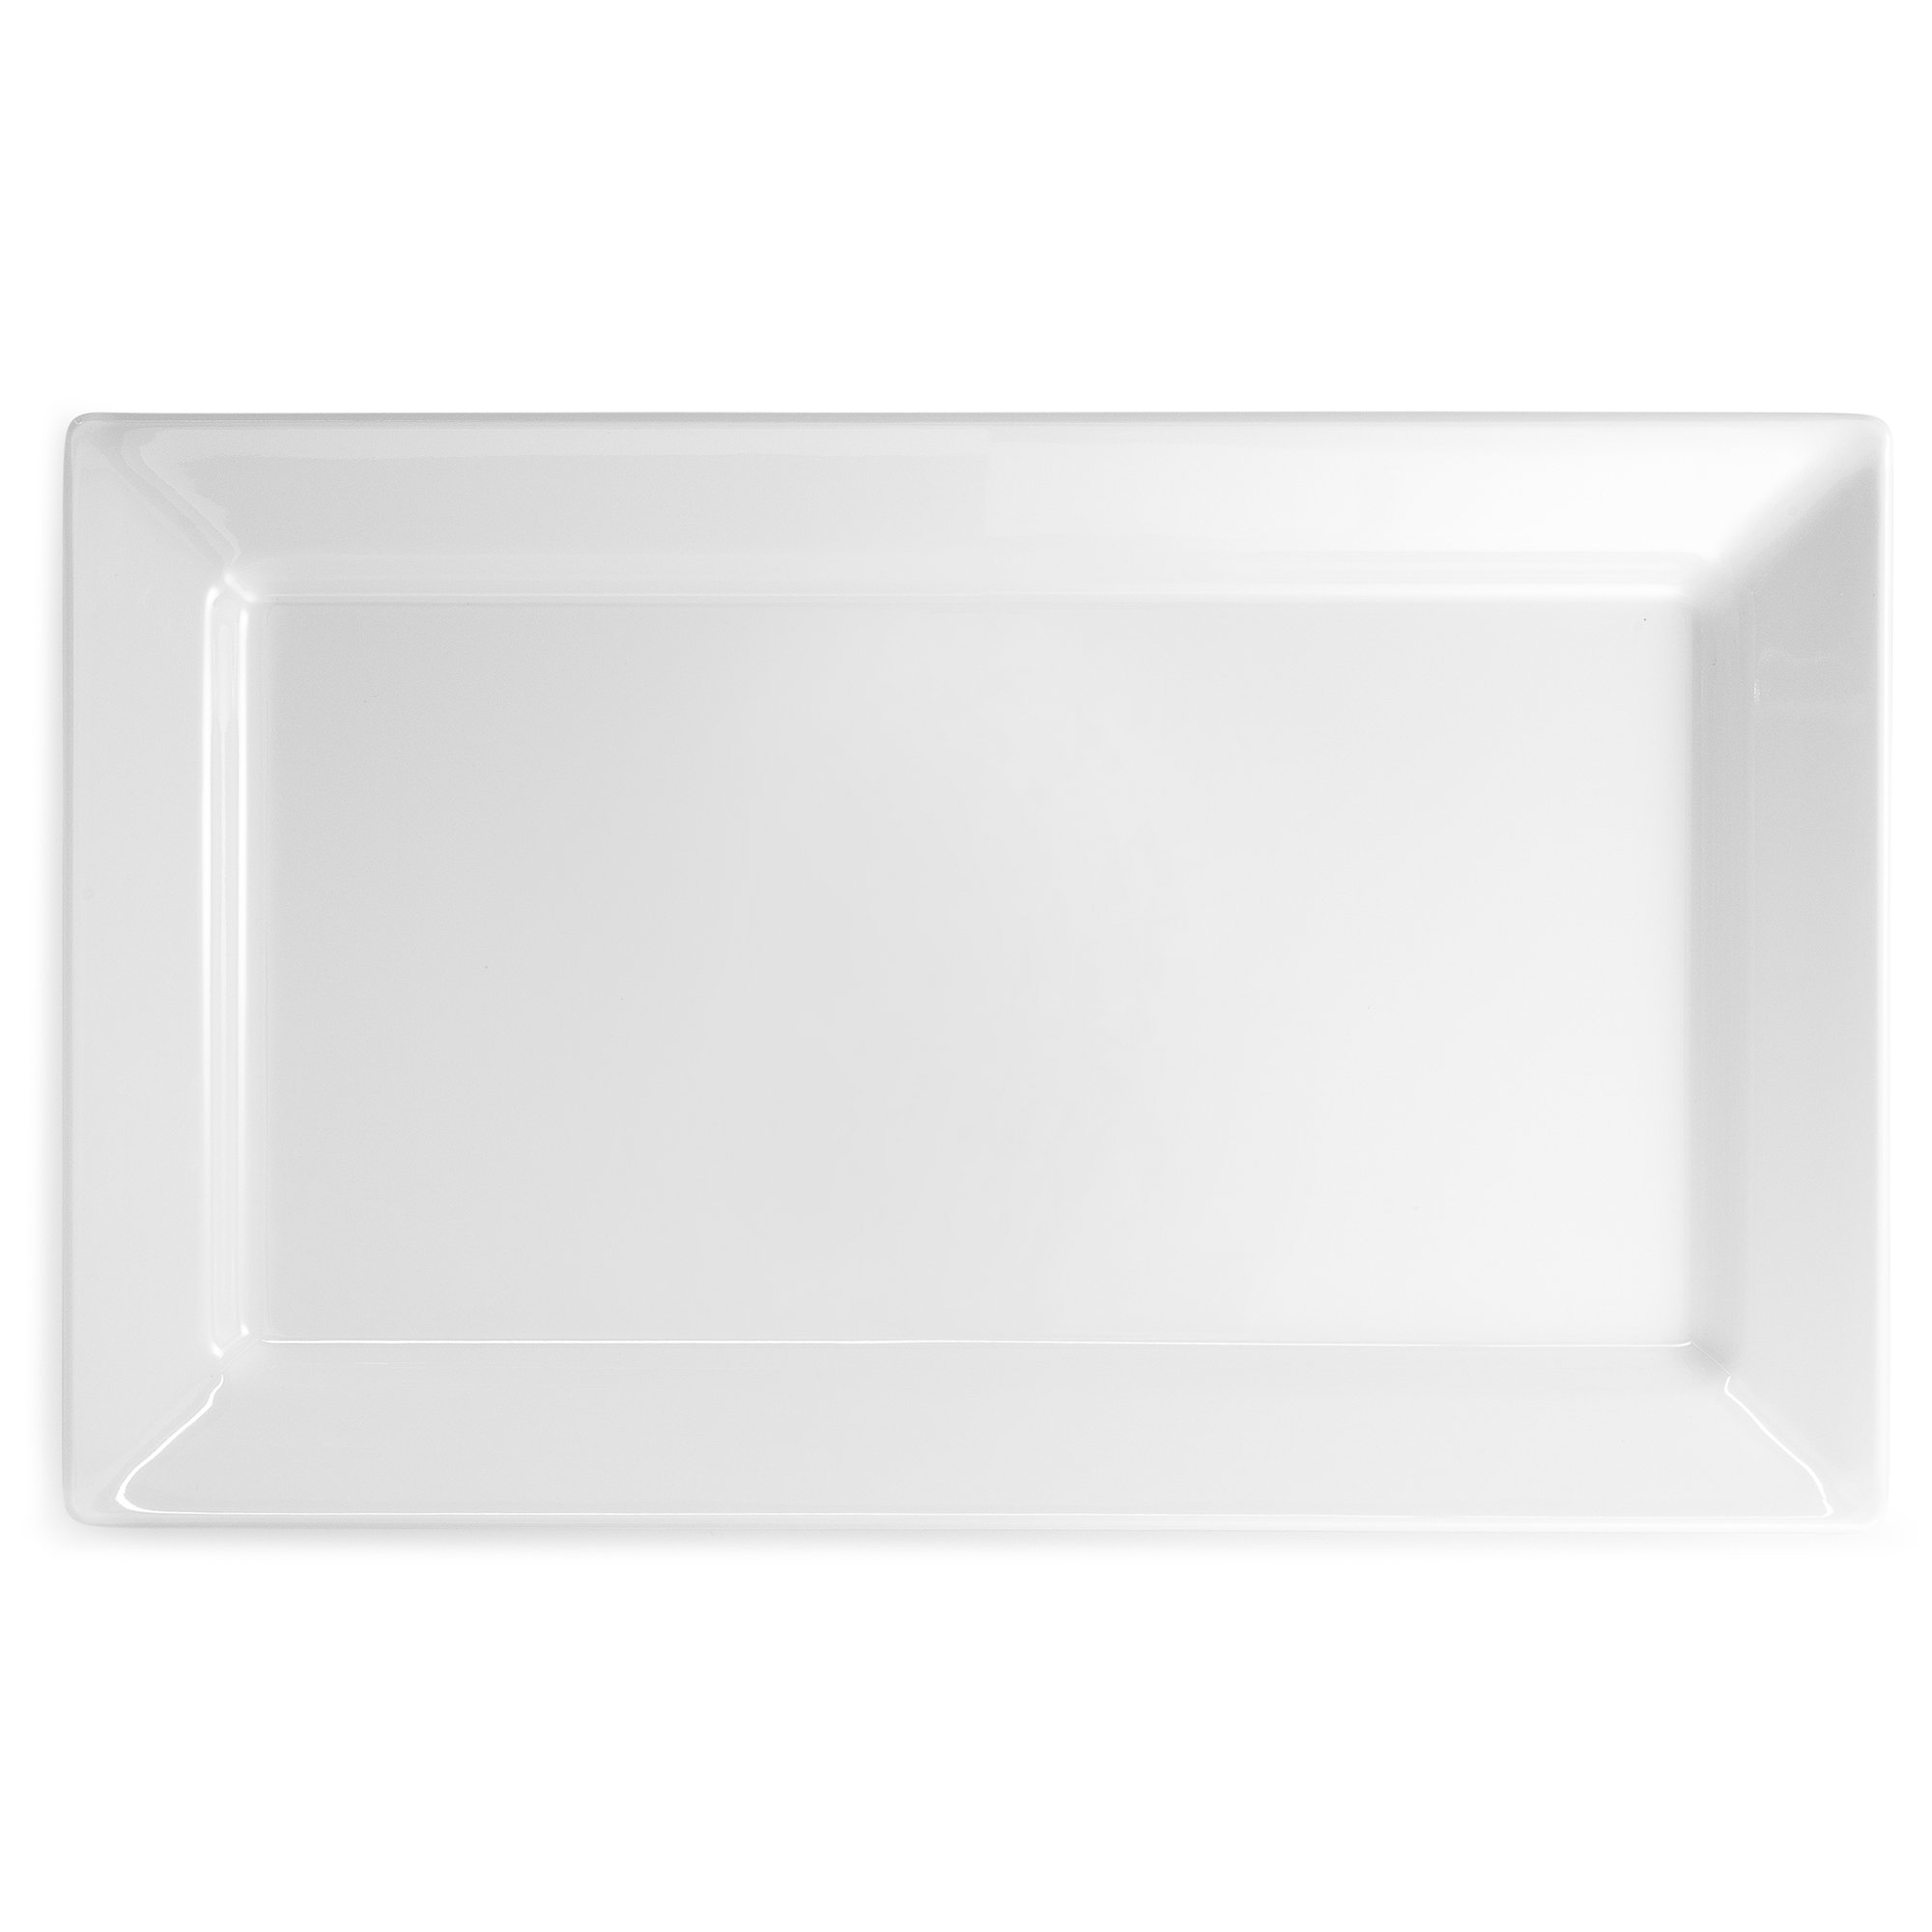 Q Squared Diamond White BPA-Free Melamine Large Rectangle Platter, 17-1/4 by 10-1/2, White